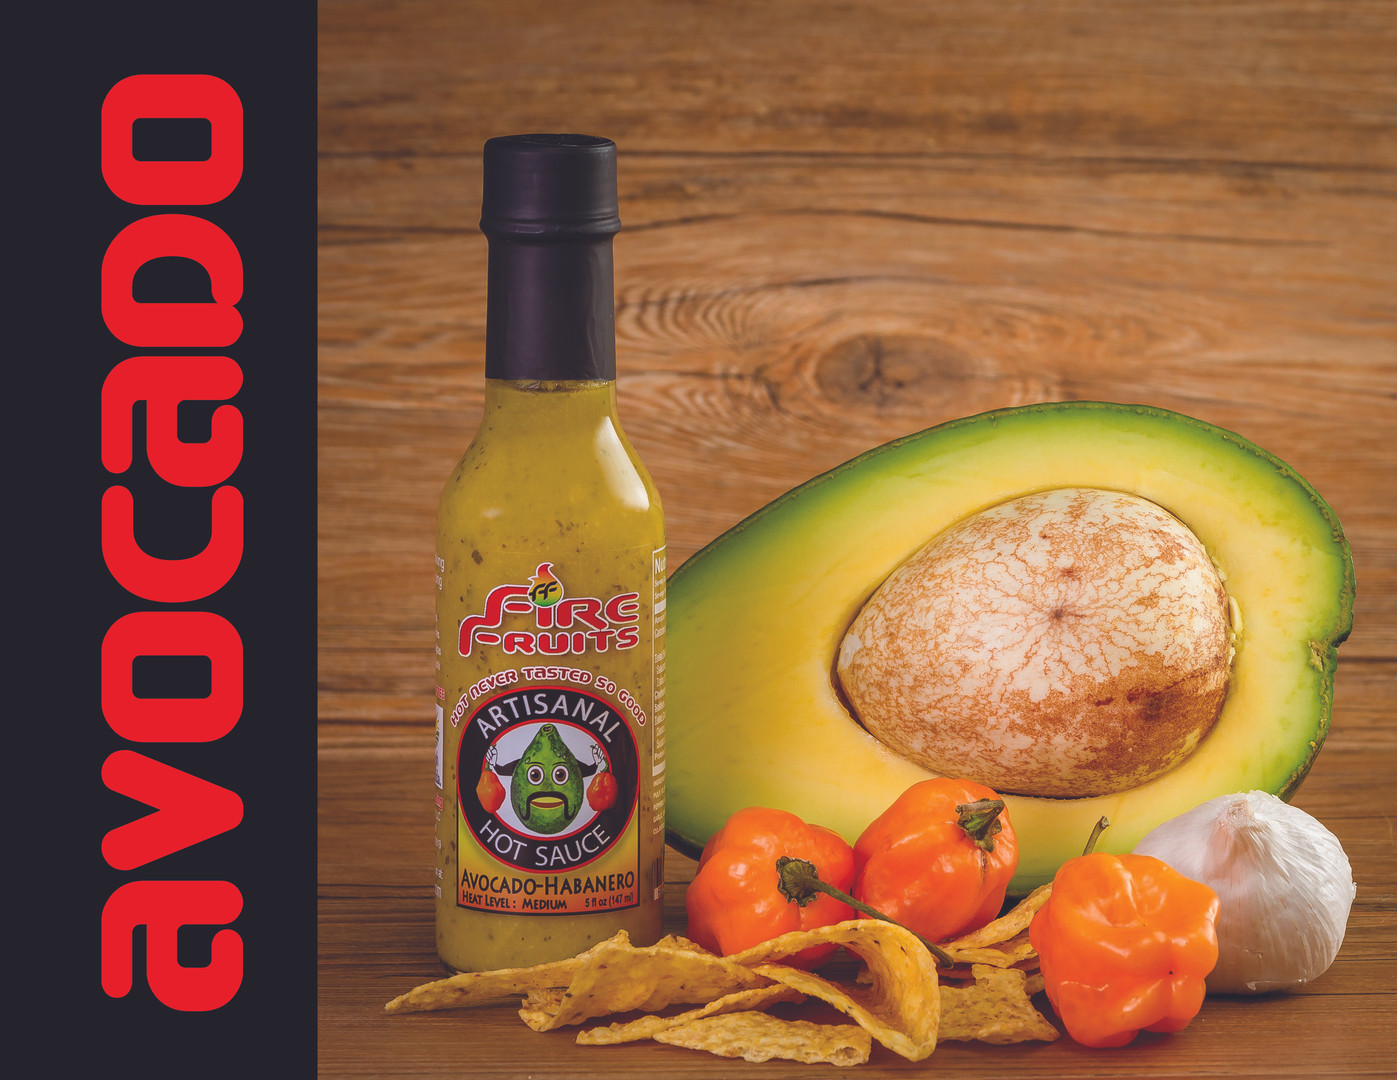 The flavor of the avocado pulp is similar to that of hazelnut and walnut. Native from Puebla, Mexico, this Mexican Inspired Artisanal Hot sauce made with creamy avocado, orange habaneros, blended with tasty cilantro, tomato, garlic and spices like culantro, oregano and others. This Artisanal Hot Sauce will infuse avocado flavor into your favorite appetizers, salads, sandwiches or any dish you would use avocado.